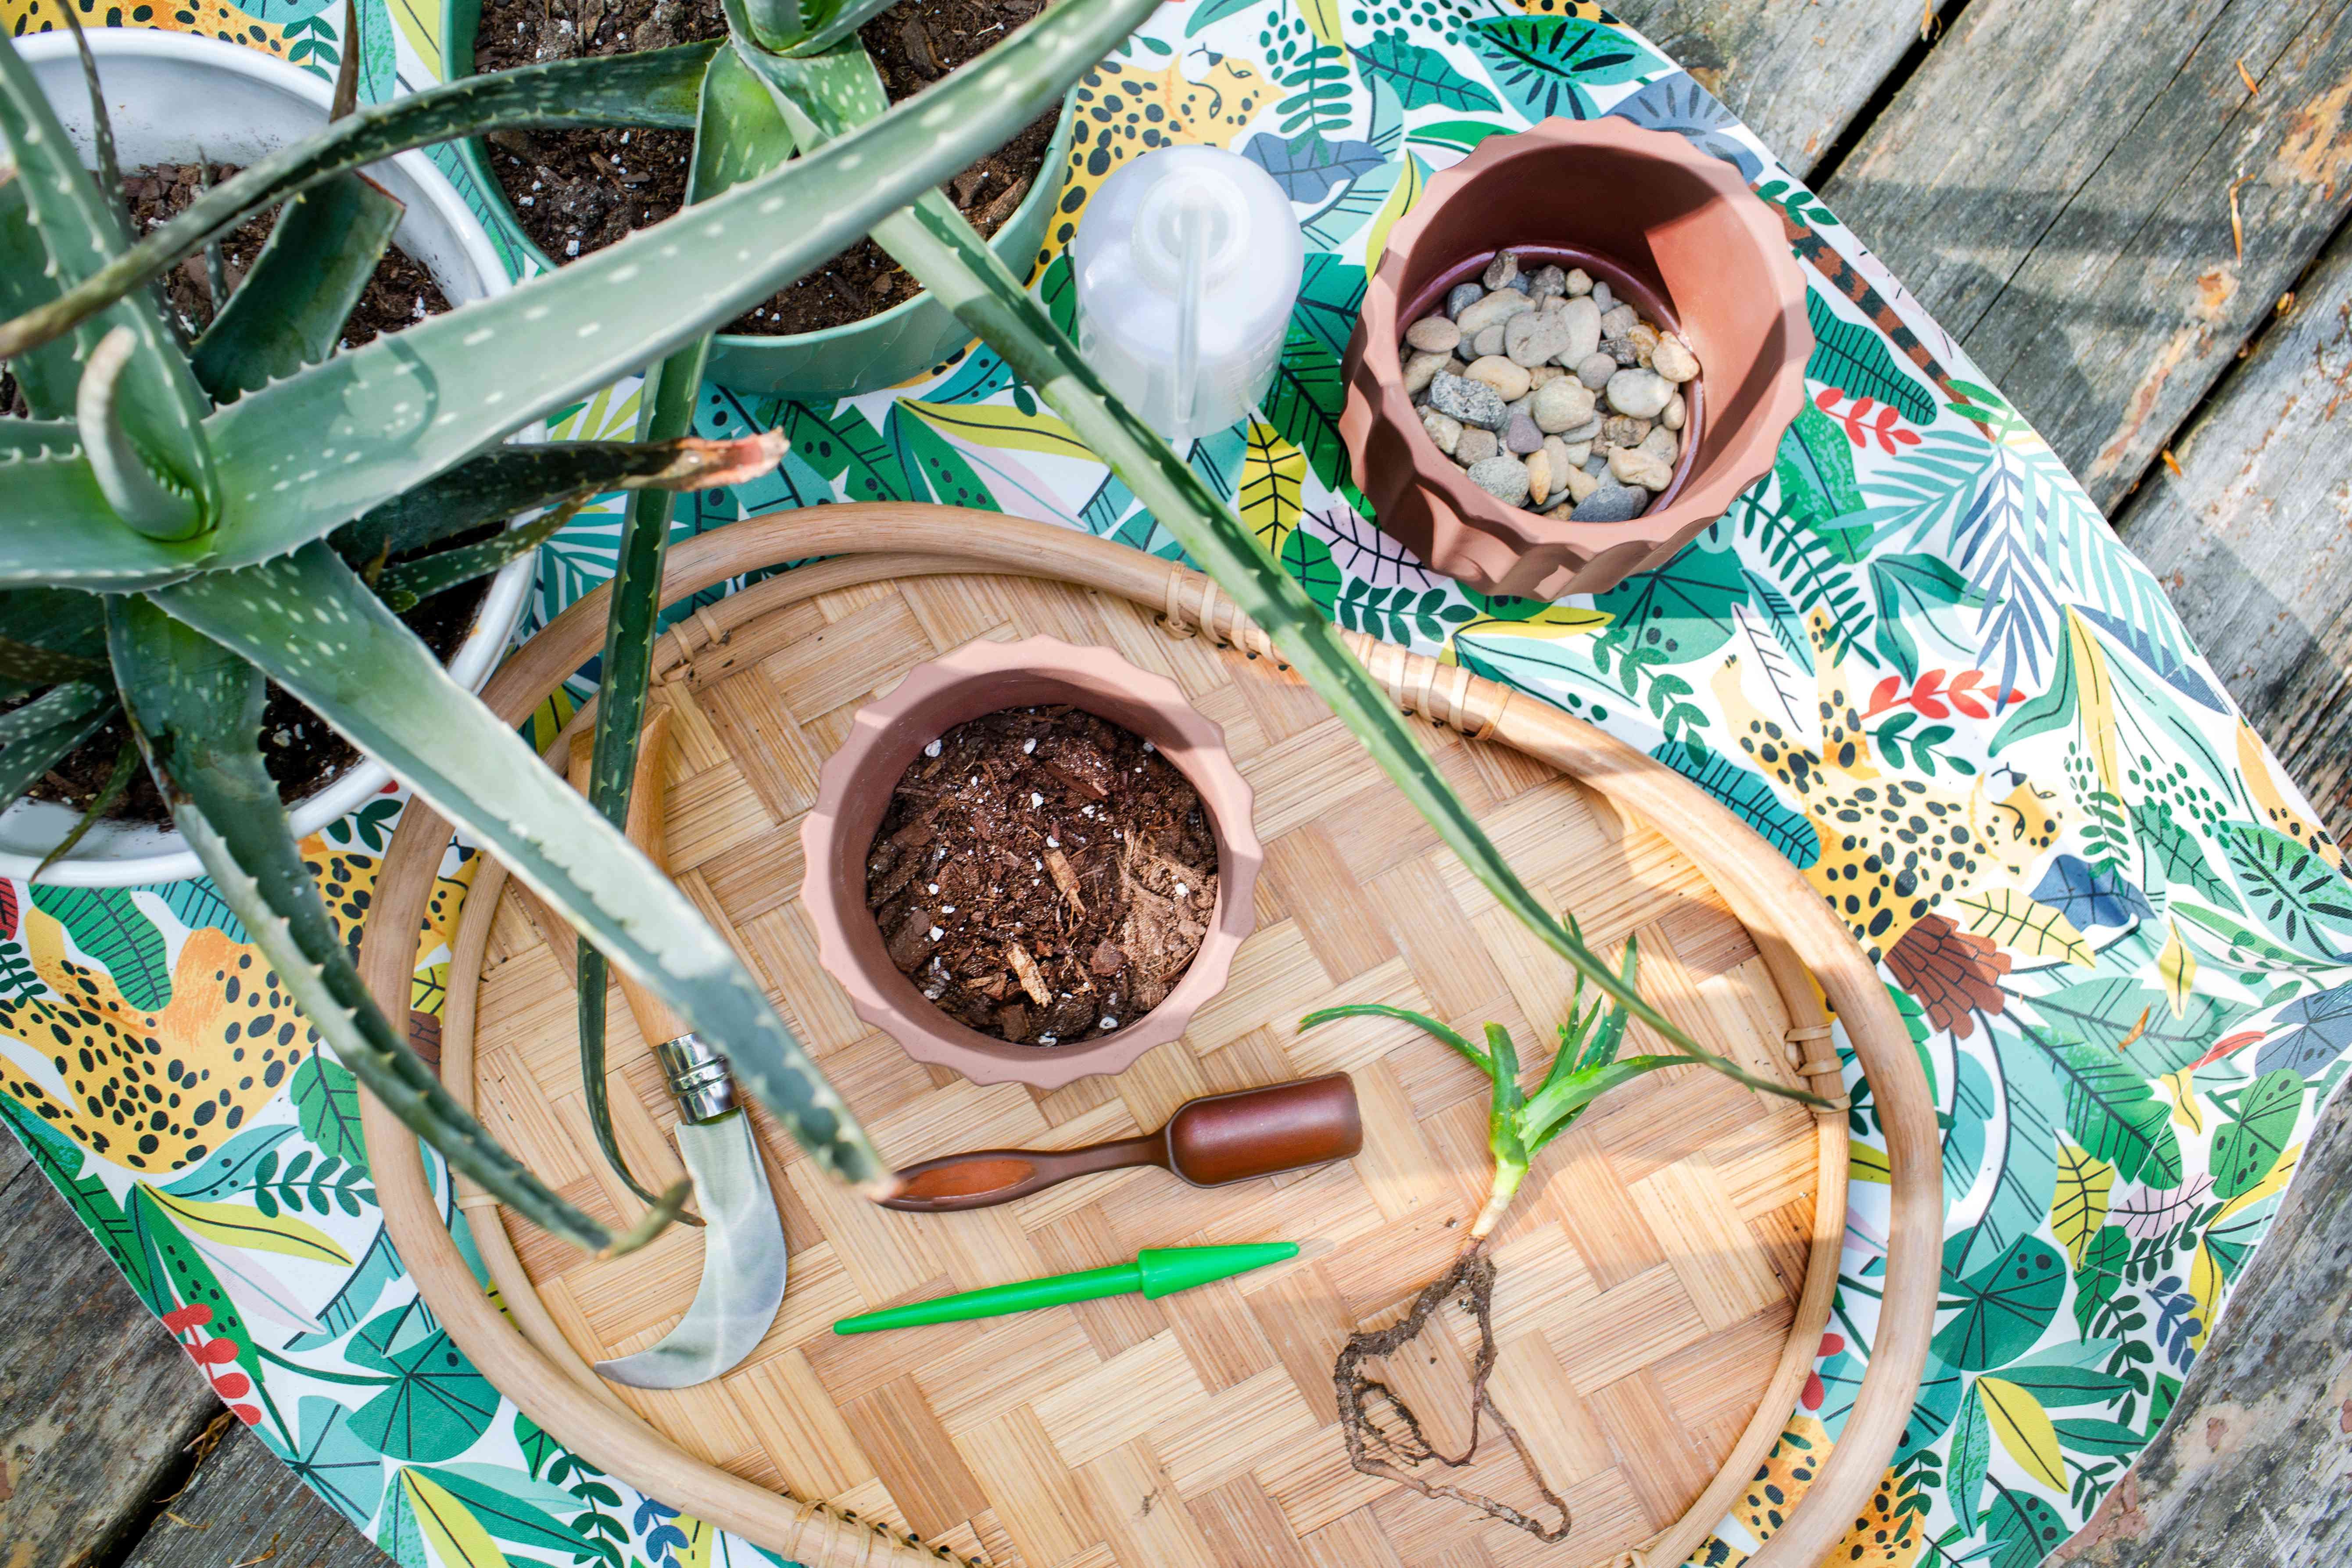 Materials and tools to propagate aloe vera plant on wicker tray and jungle-themed table cover